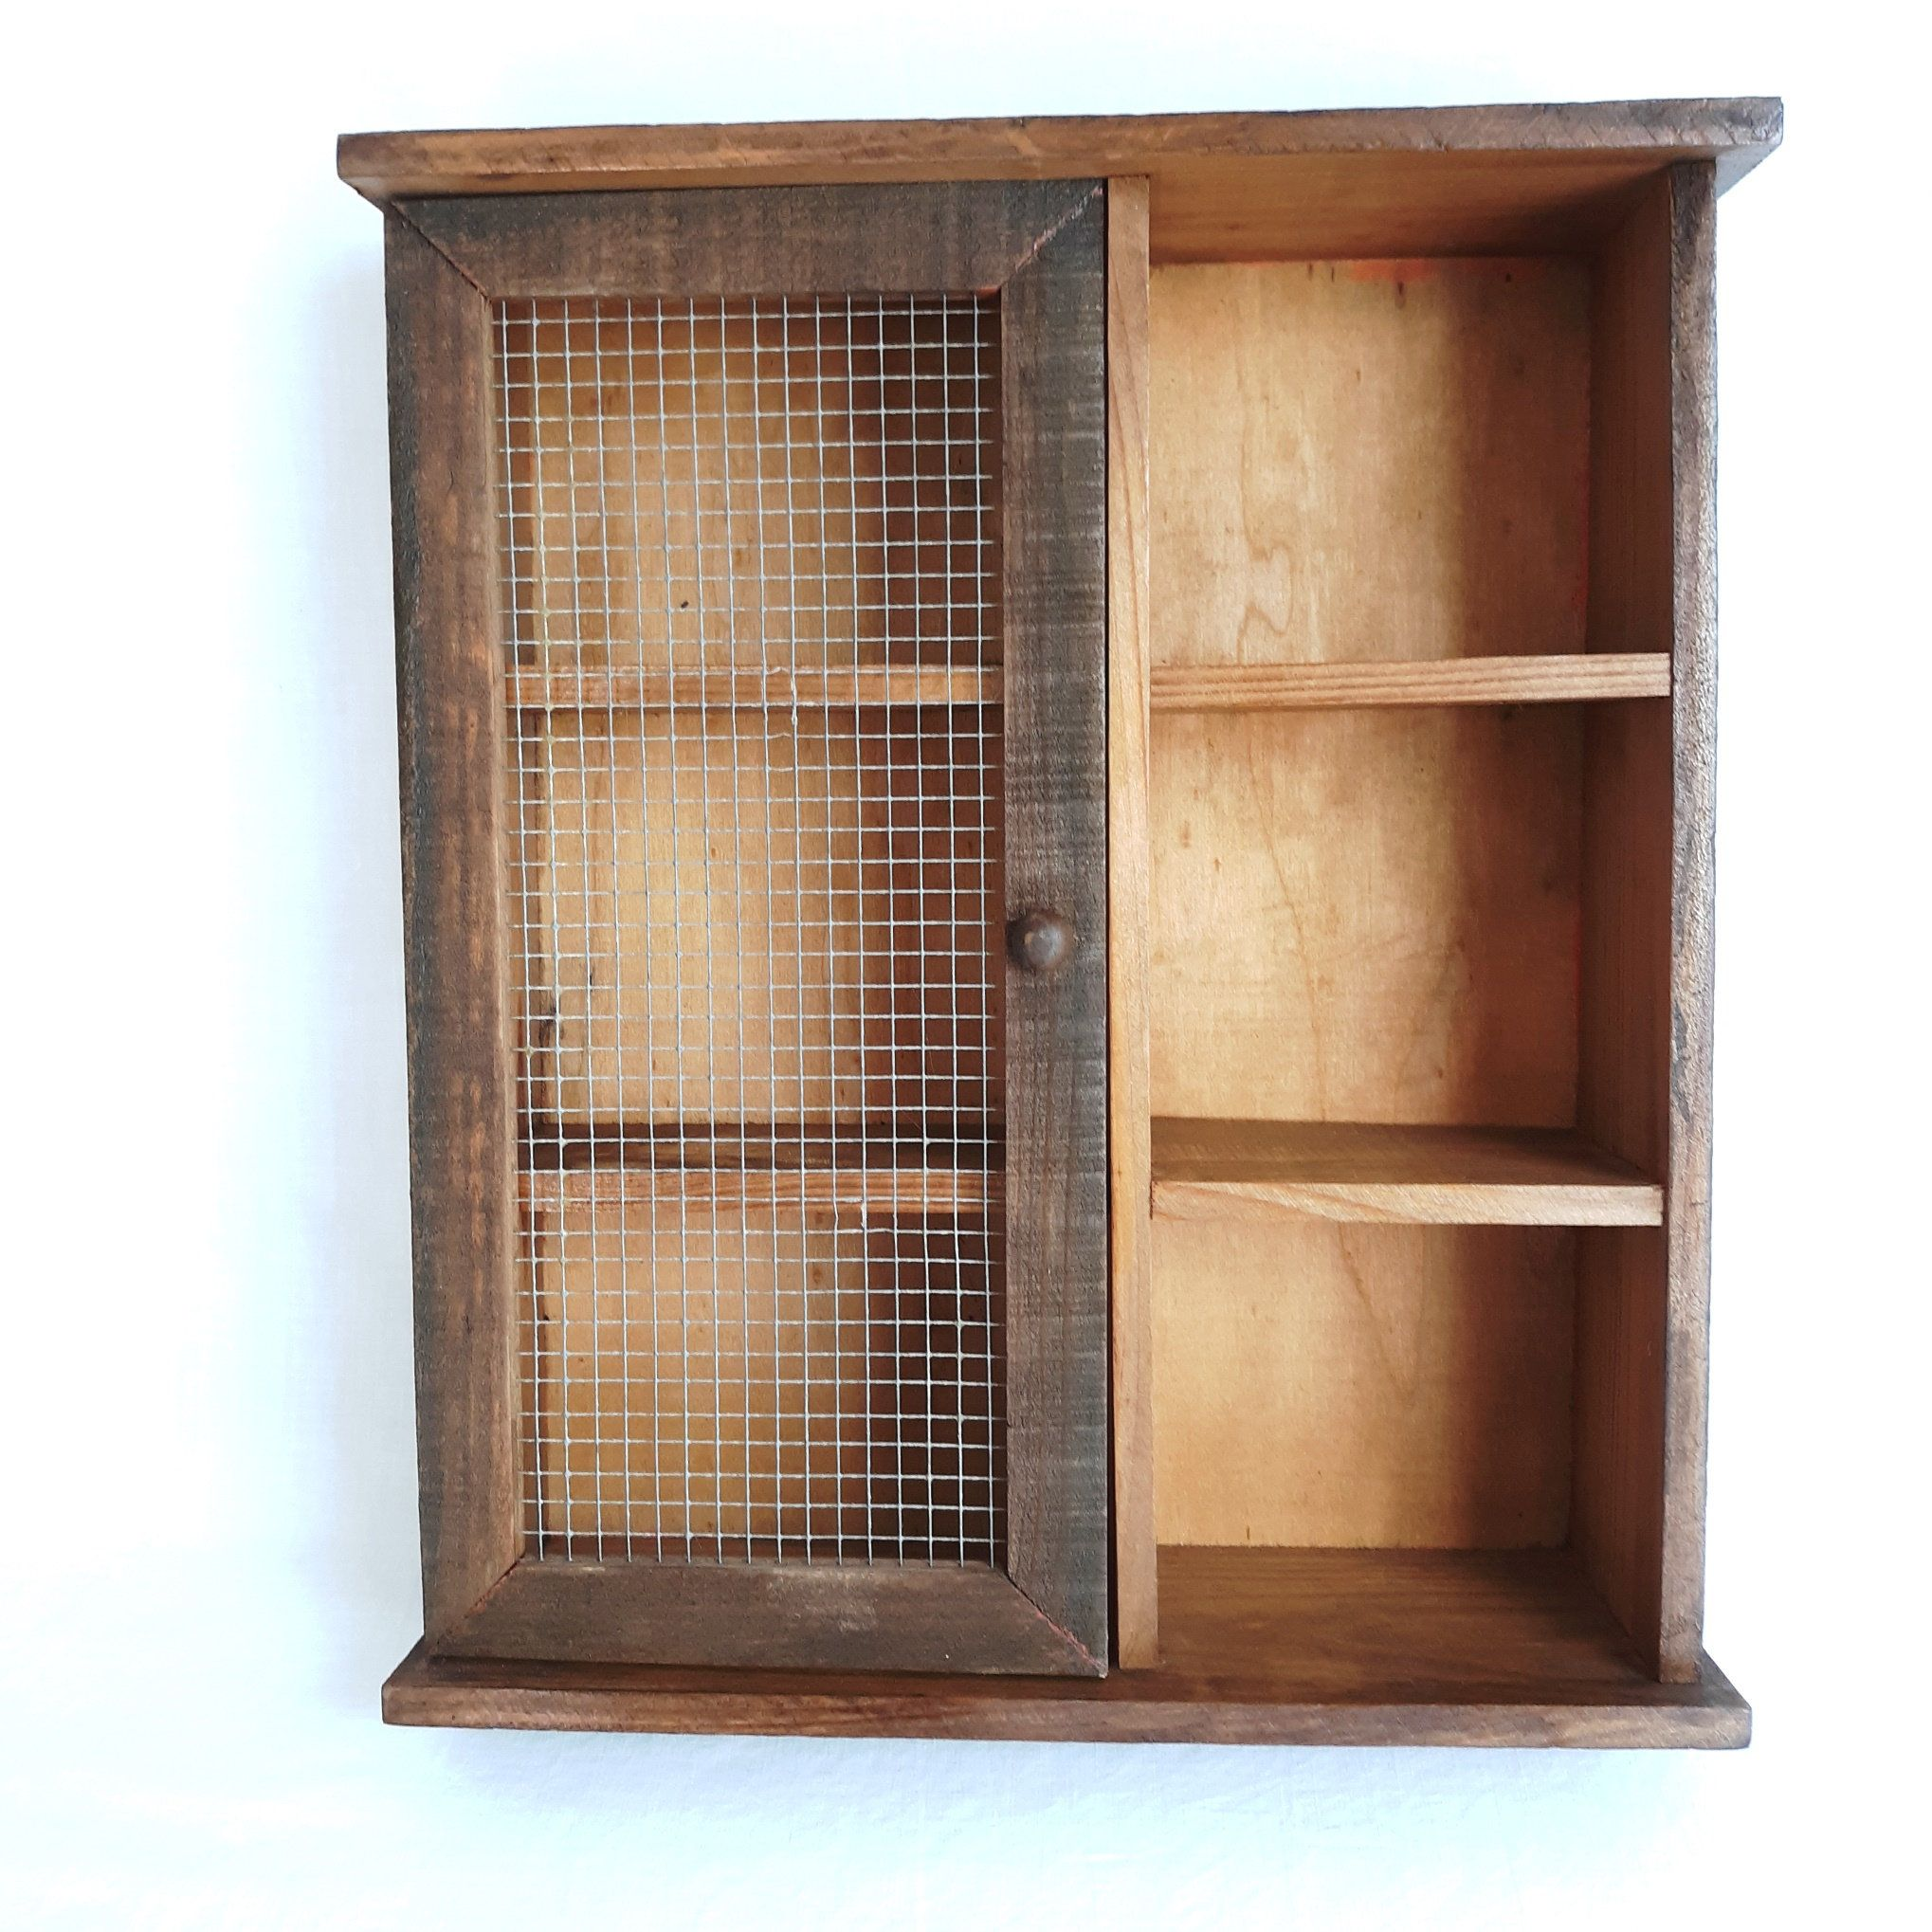 Vintage Rustic Wall Hanging Small Wooden Cabinet One Metal Etsy Rustic Wall Hangings Wooden Cabinets Home Decor Australia Small wooden cabinets with doors